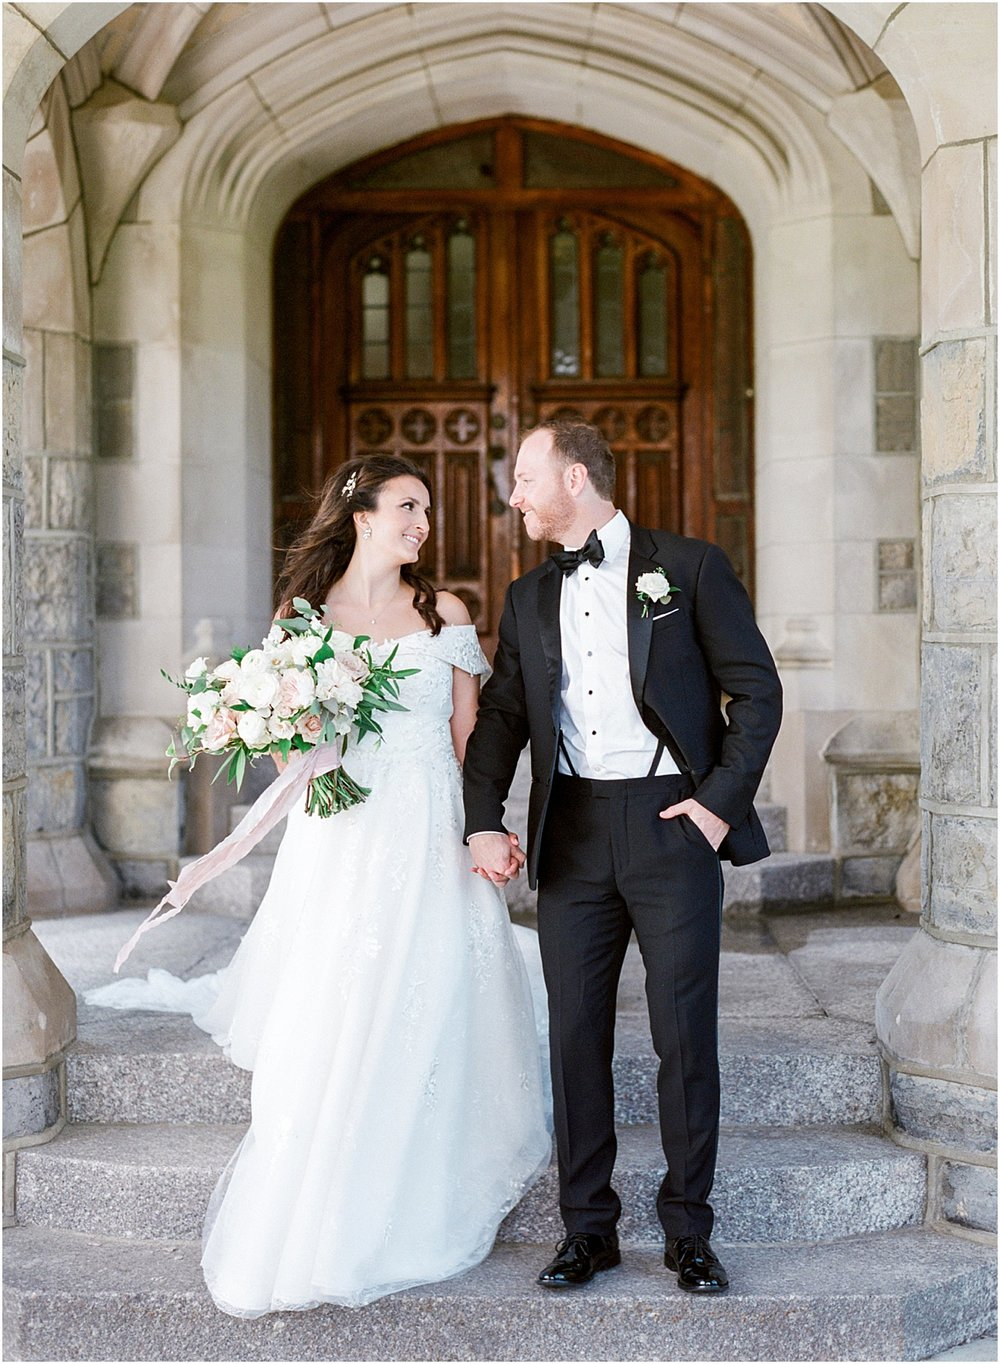 our_wedding_day_troy_NY_emma_willard_fairy_tale_royal_neutral_beauty_and_the_beast_moped_private_estate_cape_cod_boston_wedding_photographer_meredith_jane_photography_chris_kerr_photo_1967.jpg